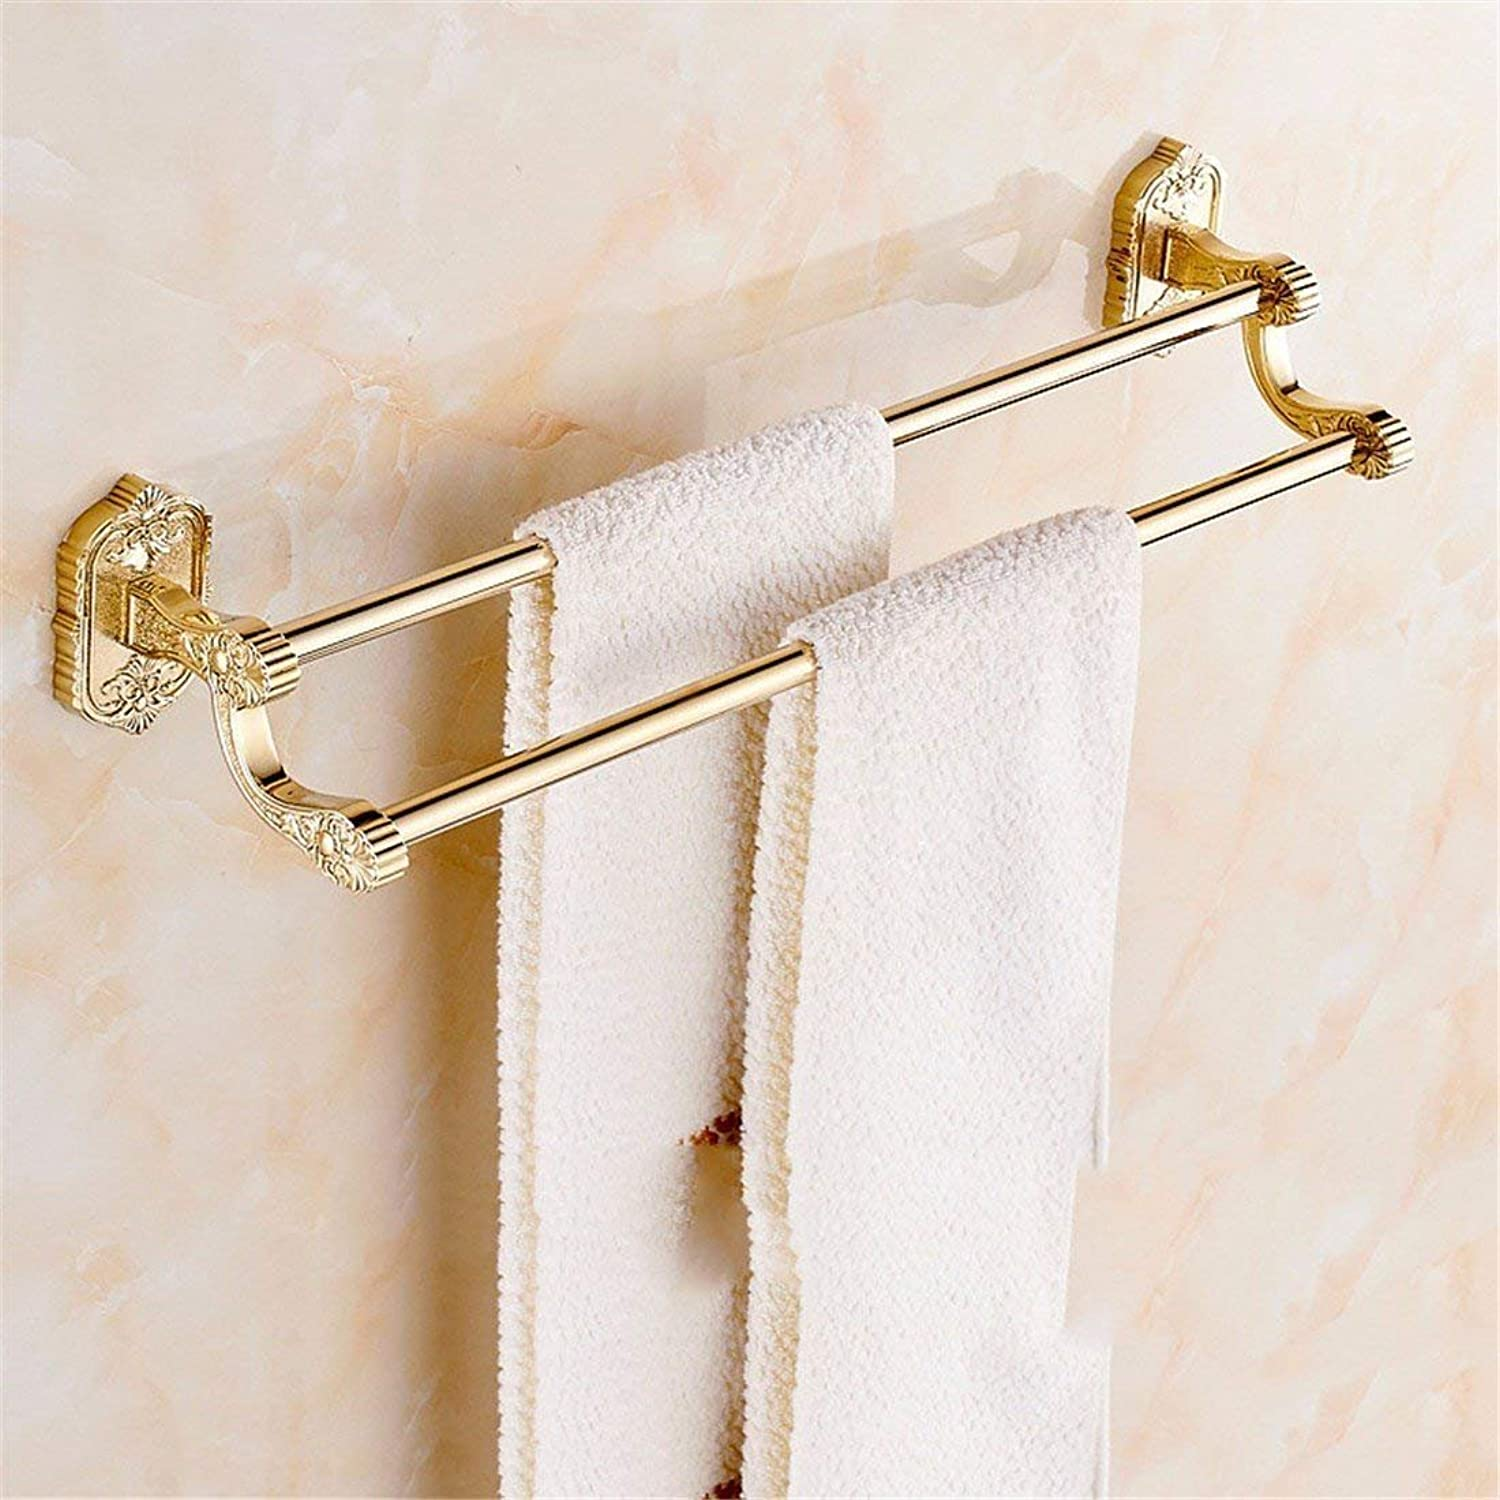 The zinc Alloy, gold Carved Christmas, Basis of Bathroom Fittings, Toilet Paper, soap,Double Pole